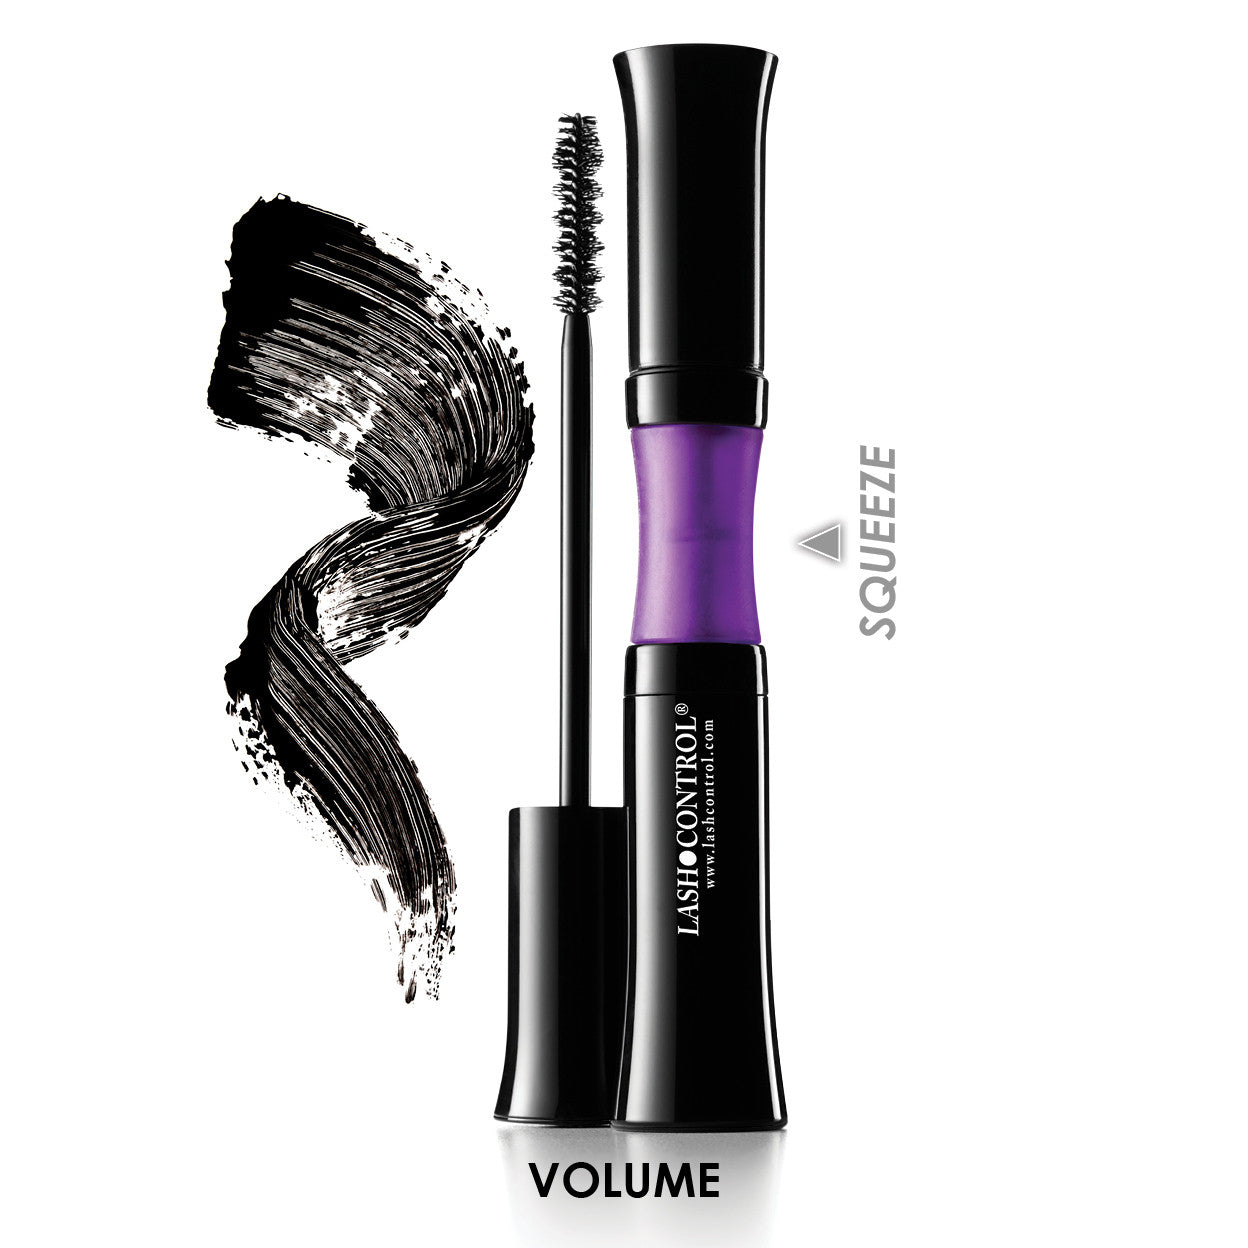 LashControl Volumizing and Conditioning Mascara for 2x Black